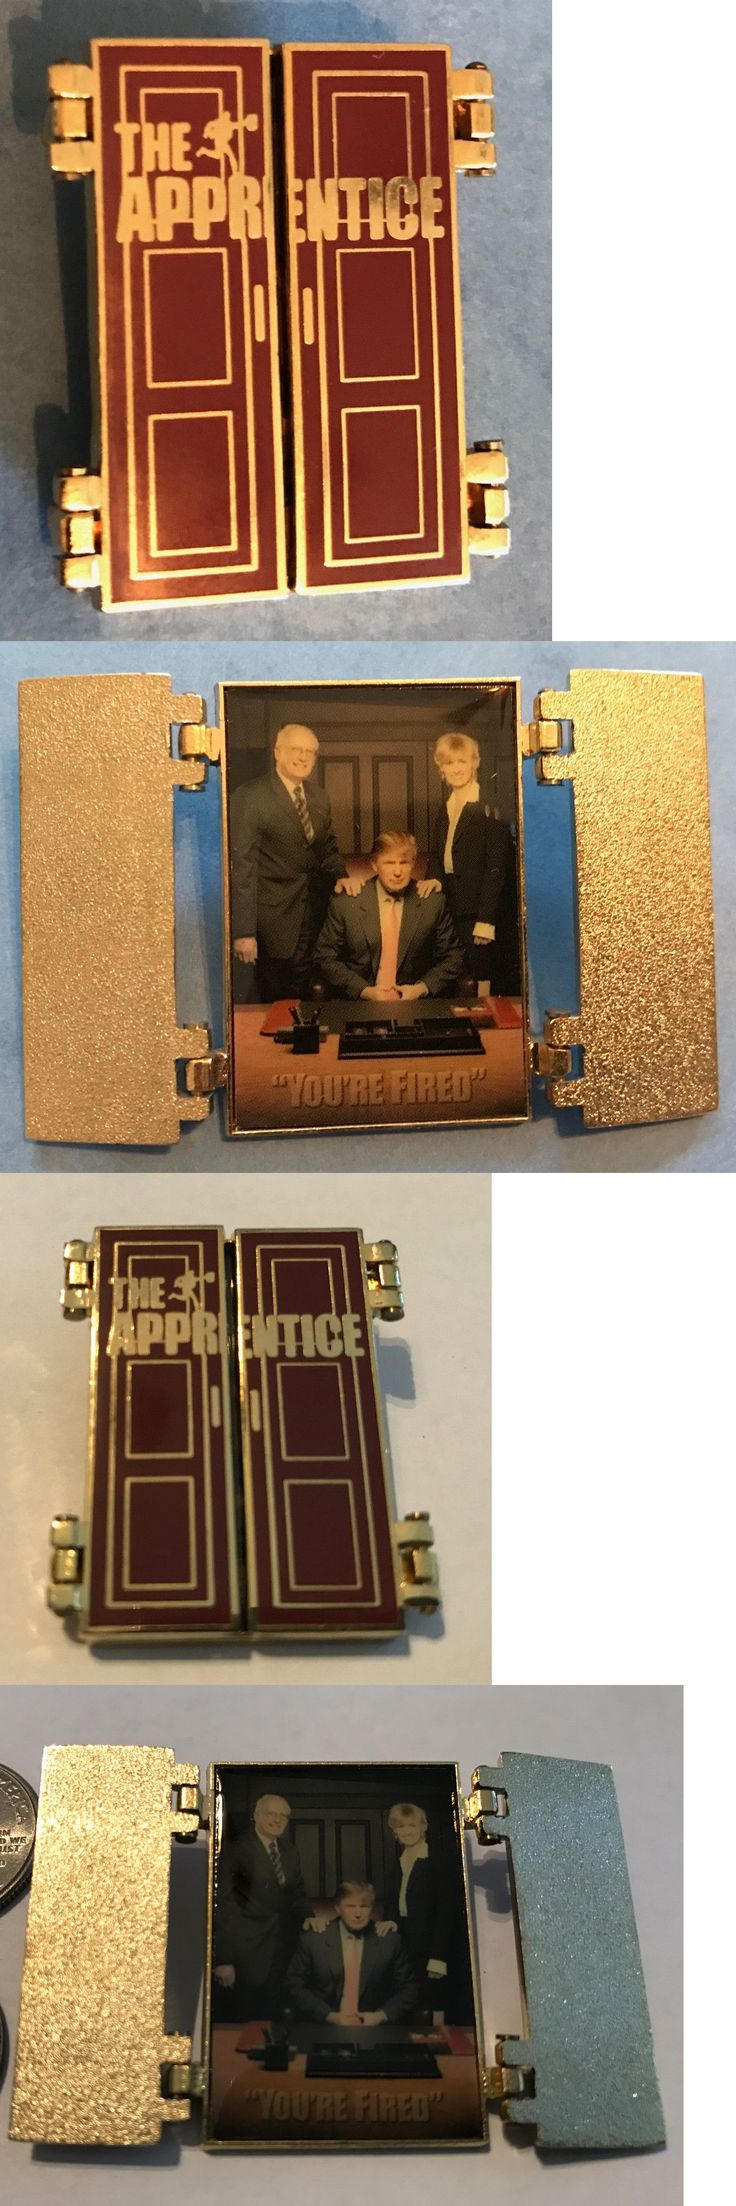 donald trump: Donald Trump The Apprentice Hat Jacket Lapel Pin Novelty Political President Htf -> BUY IT NOW ONLY: $8.0 on eBay!